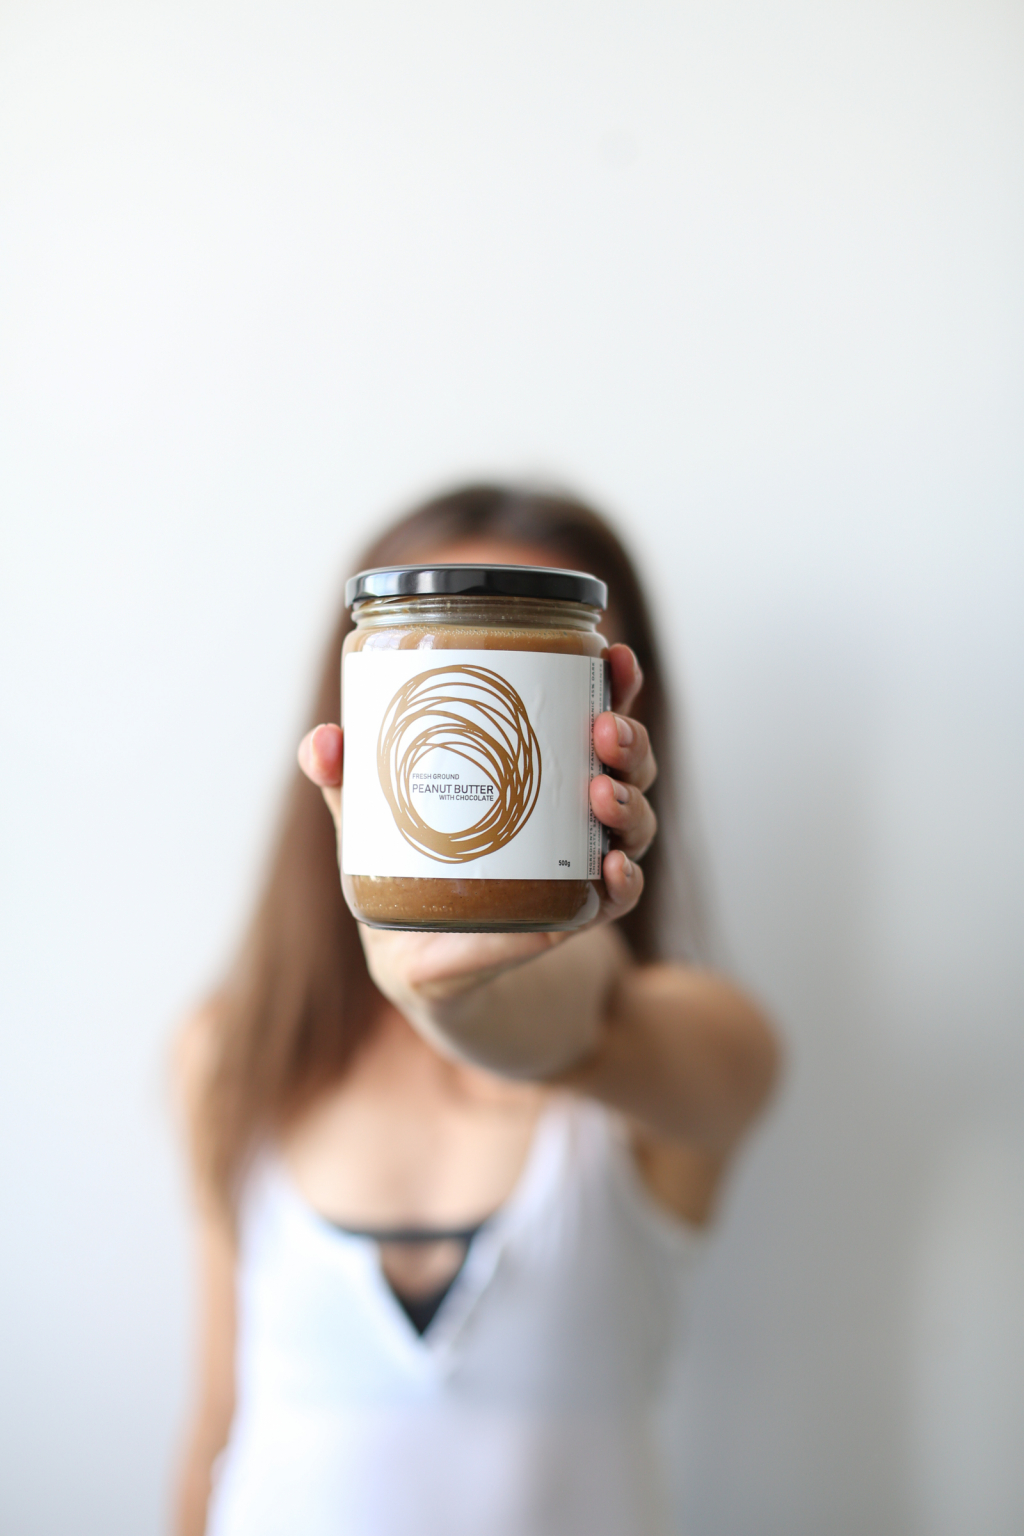 Thumbnail of: Chocolate Peanut Butter 250g - Free Pick-Up Within Calgary